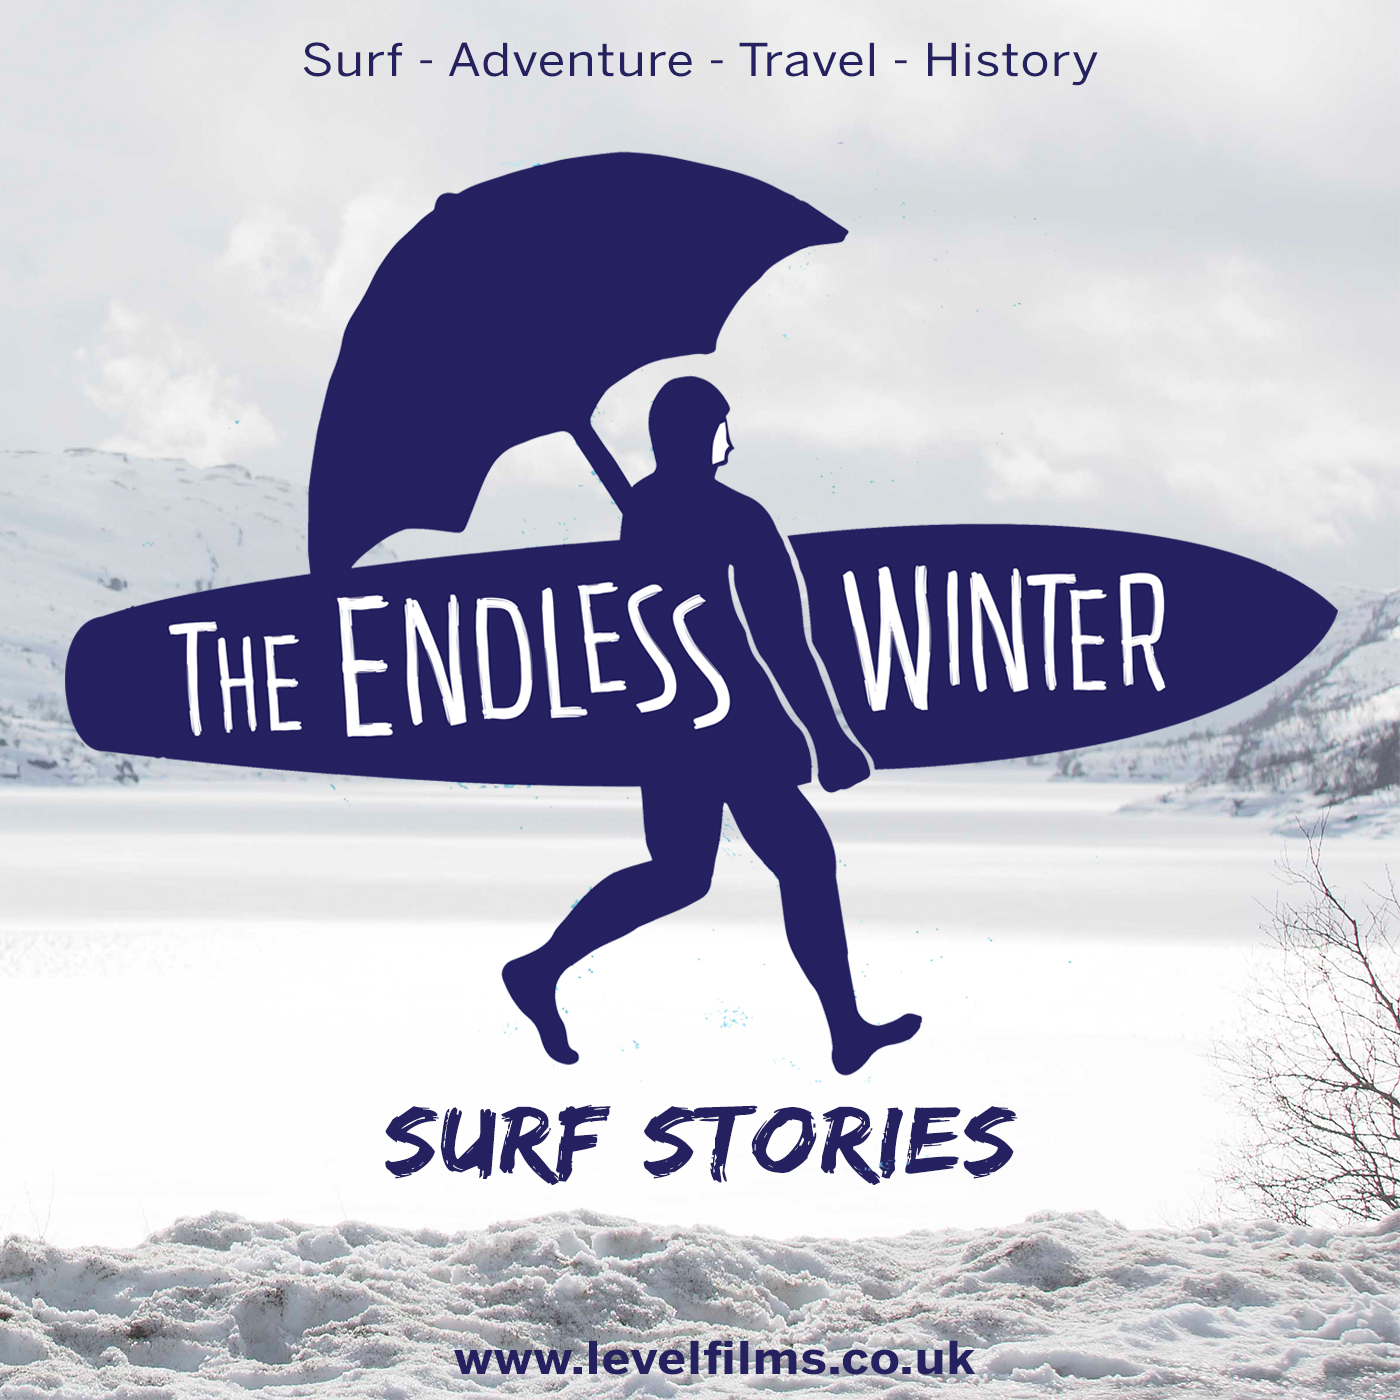 The Endless Winter: Surf Stories show image